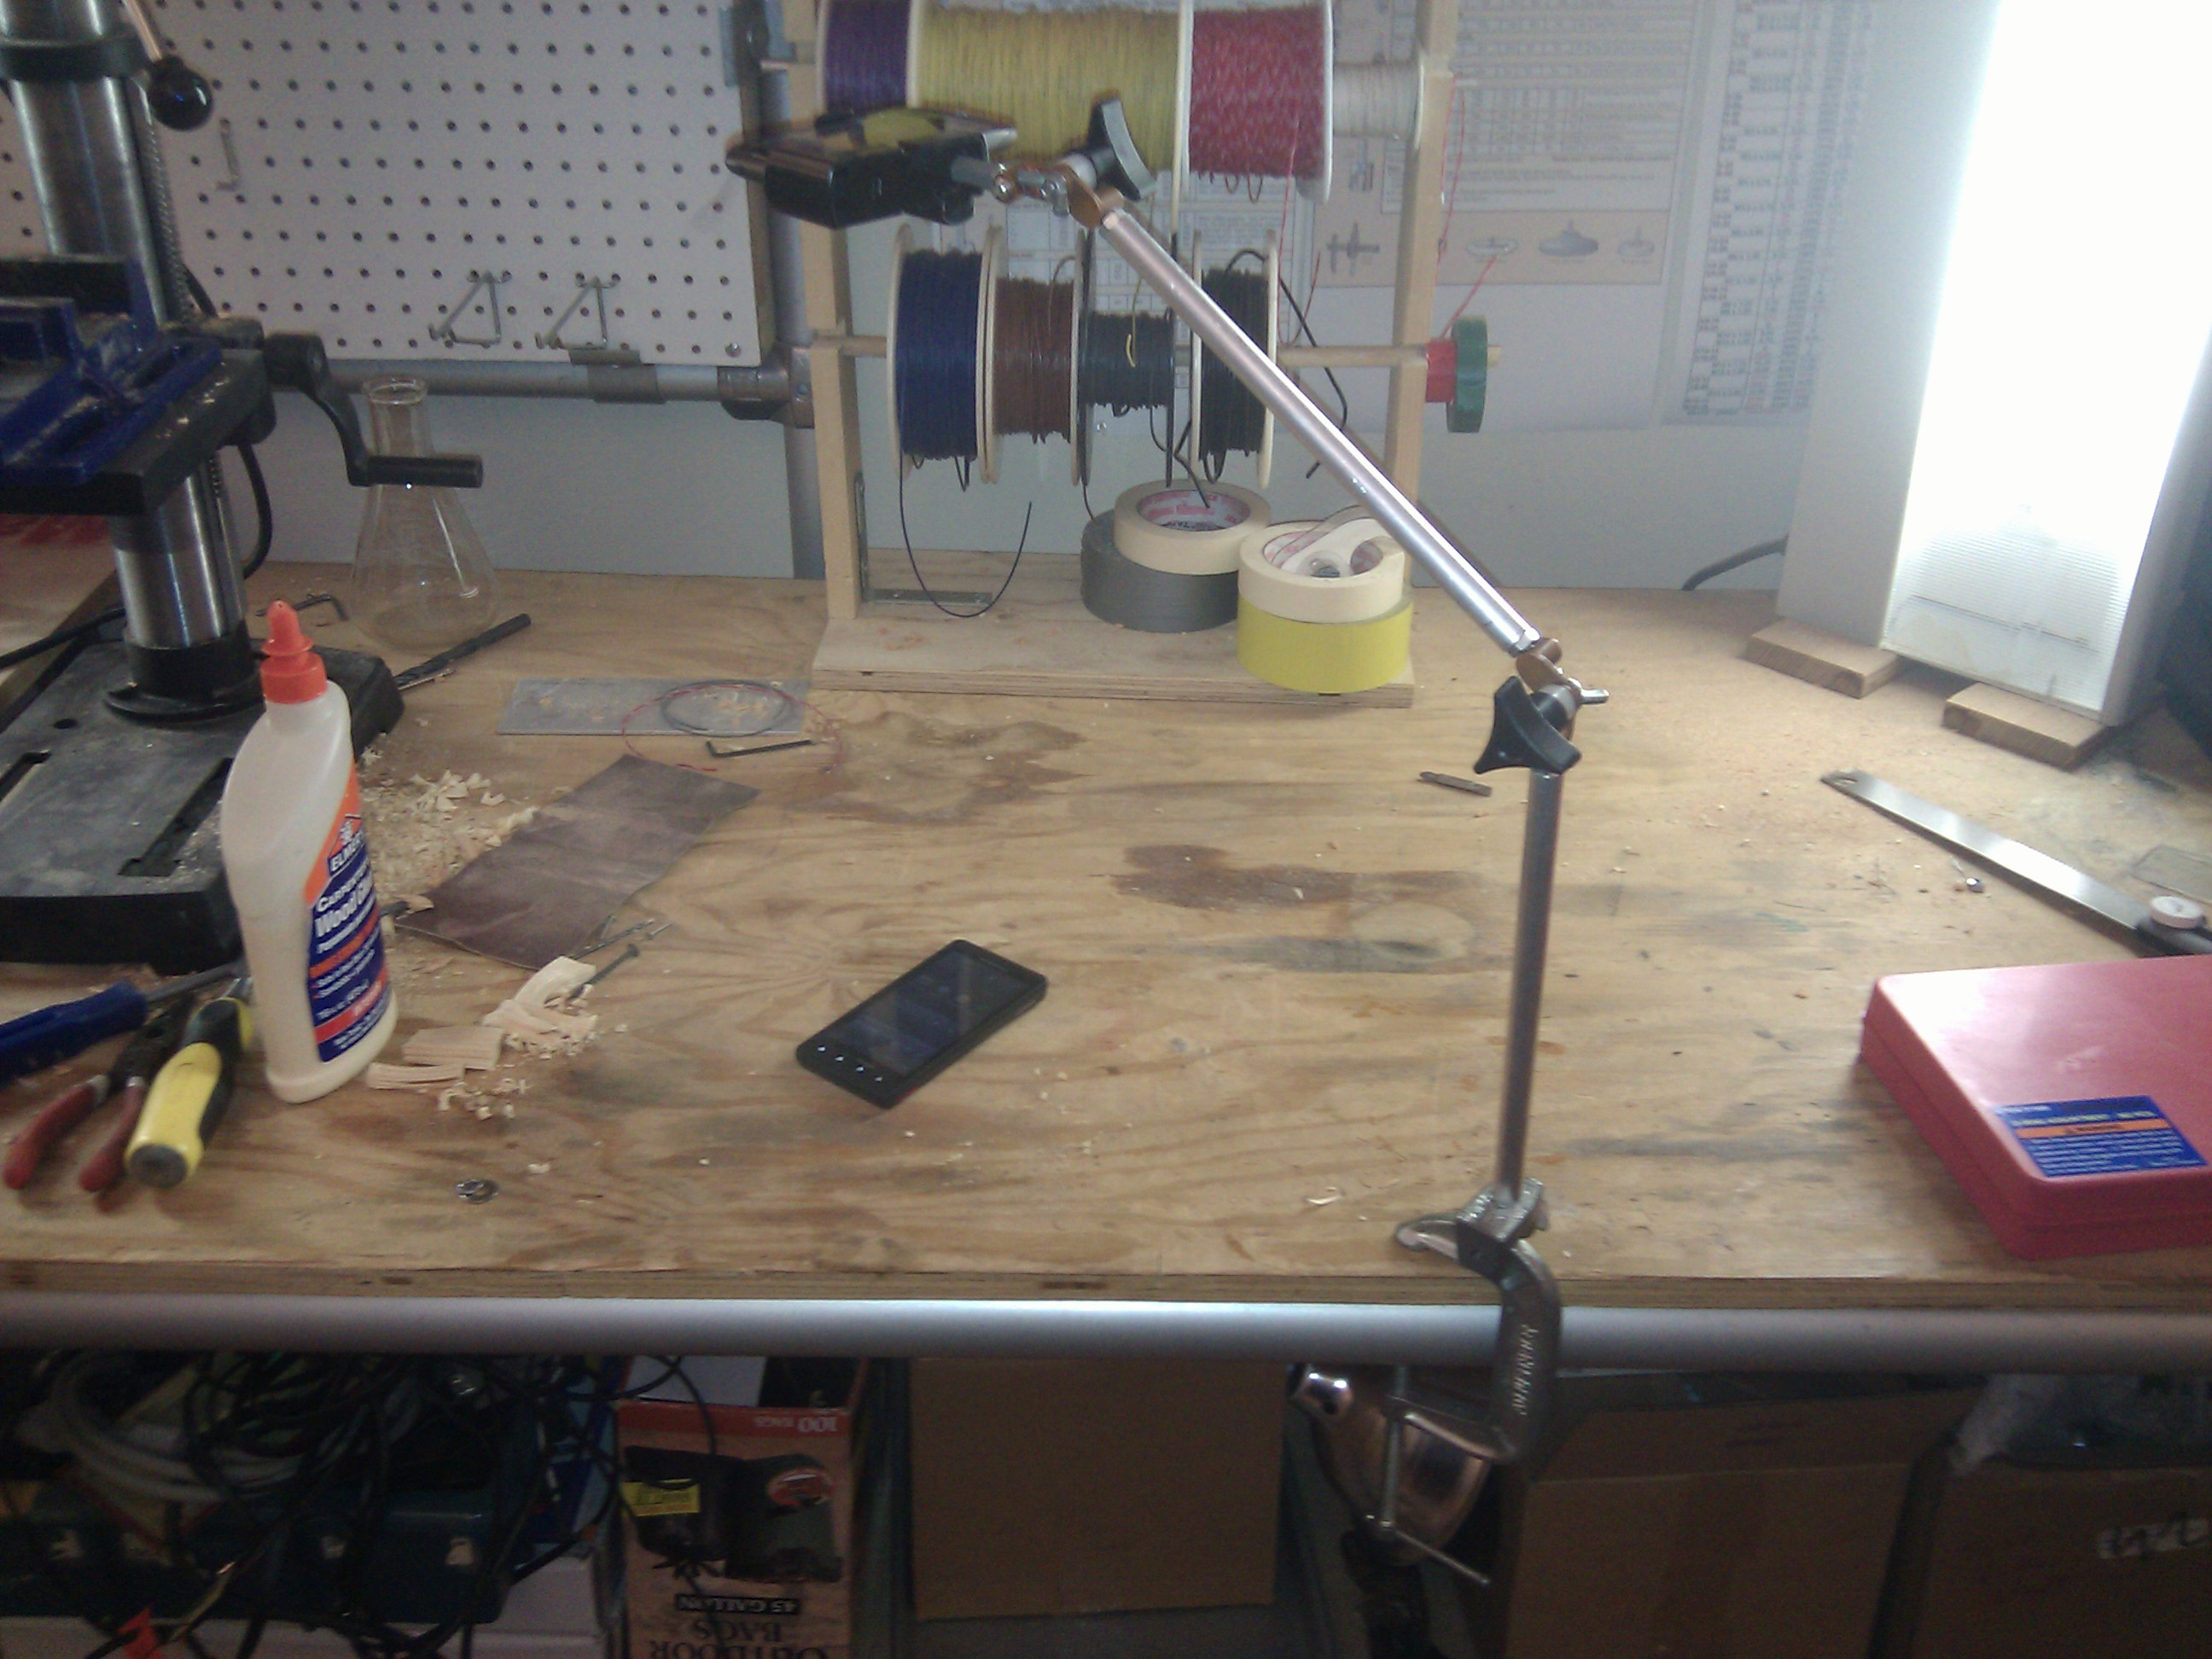 Mobile Document Camera Stand in Make: Projects